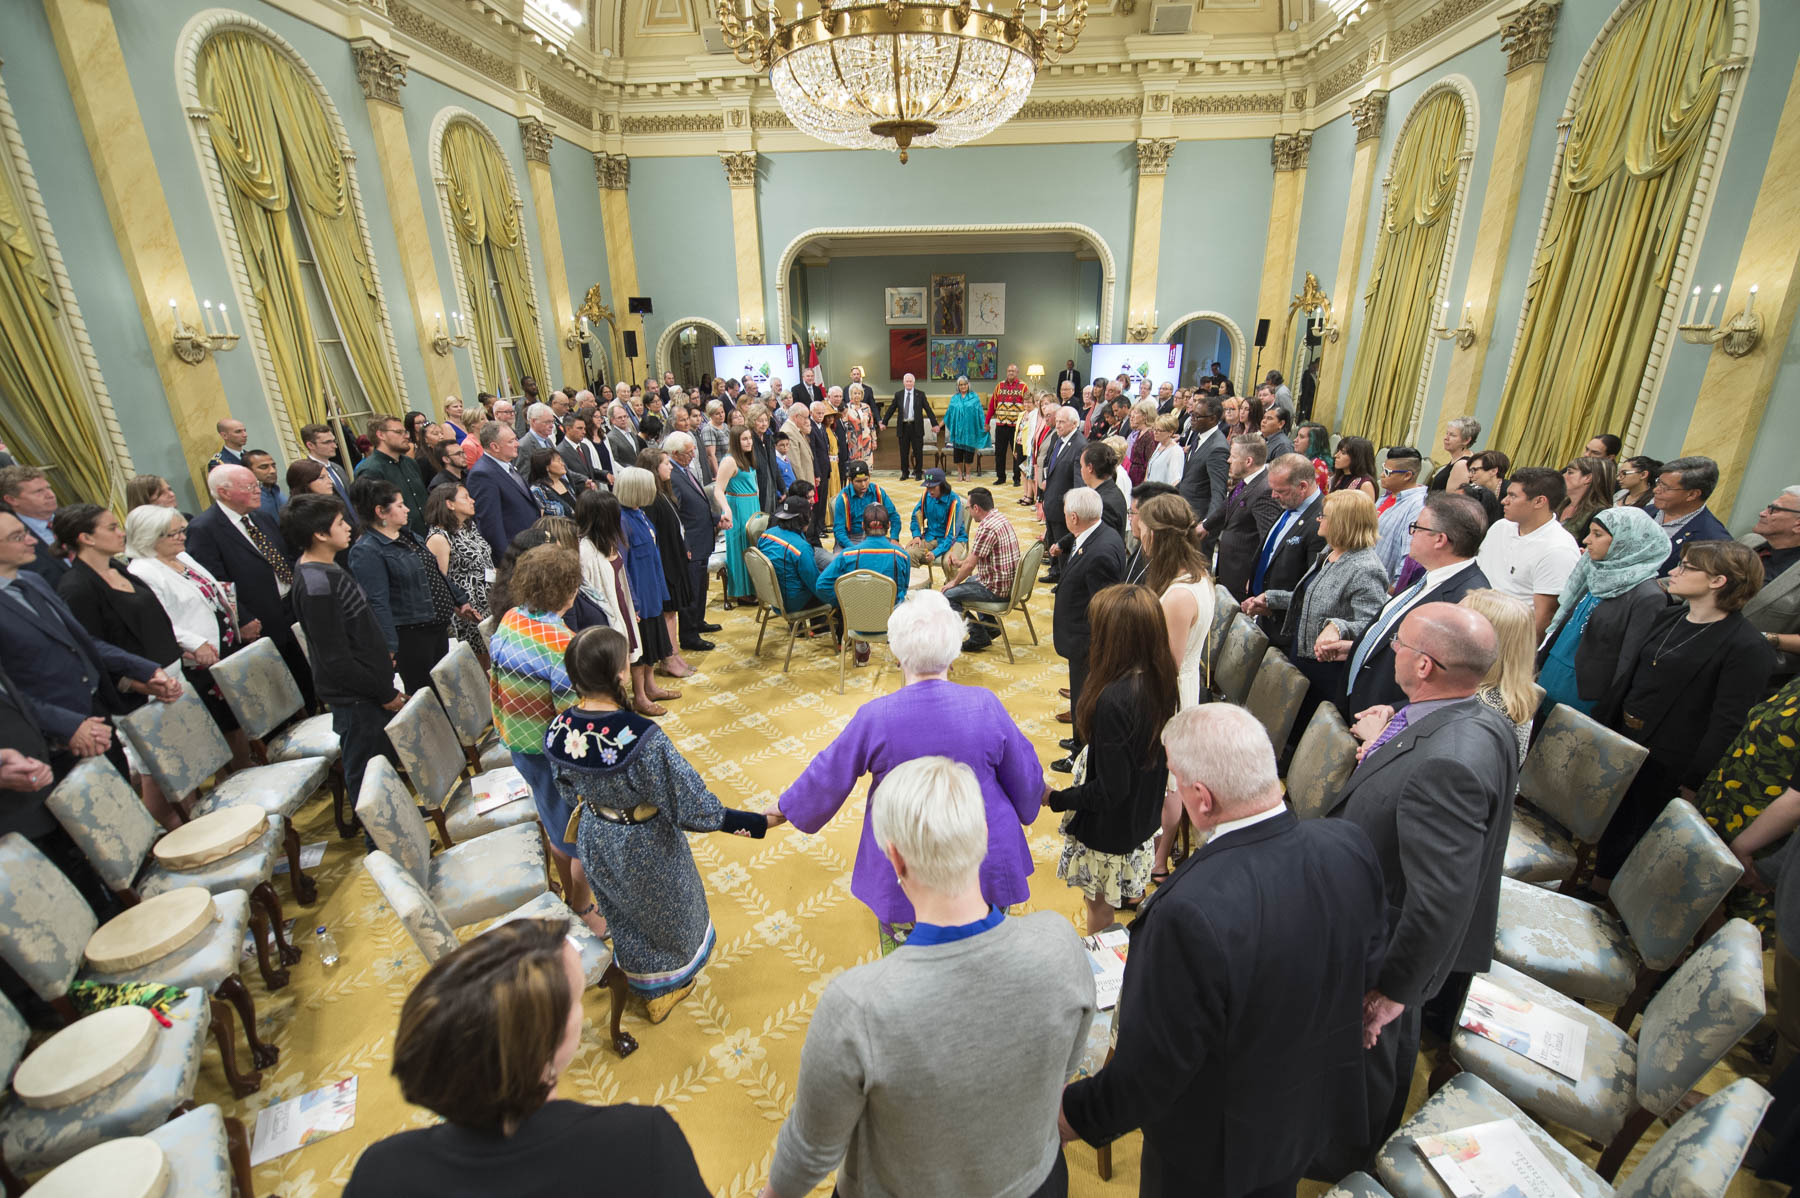 His Excellency recognized the final 13 selections from the Imagine a Canada initiative at Rideau Hall. The works of each participant were presented.